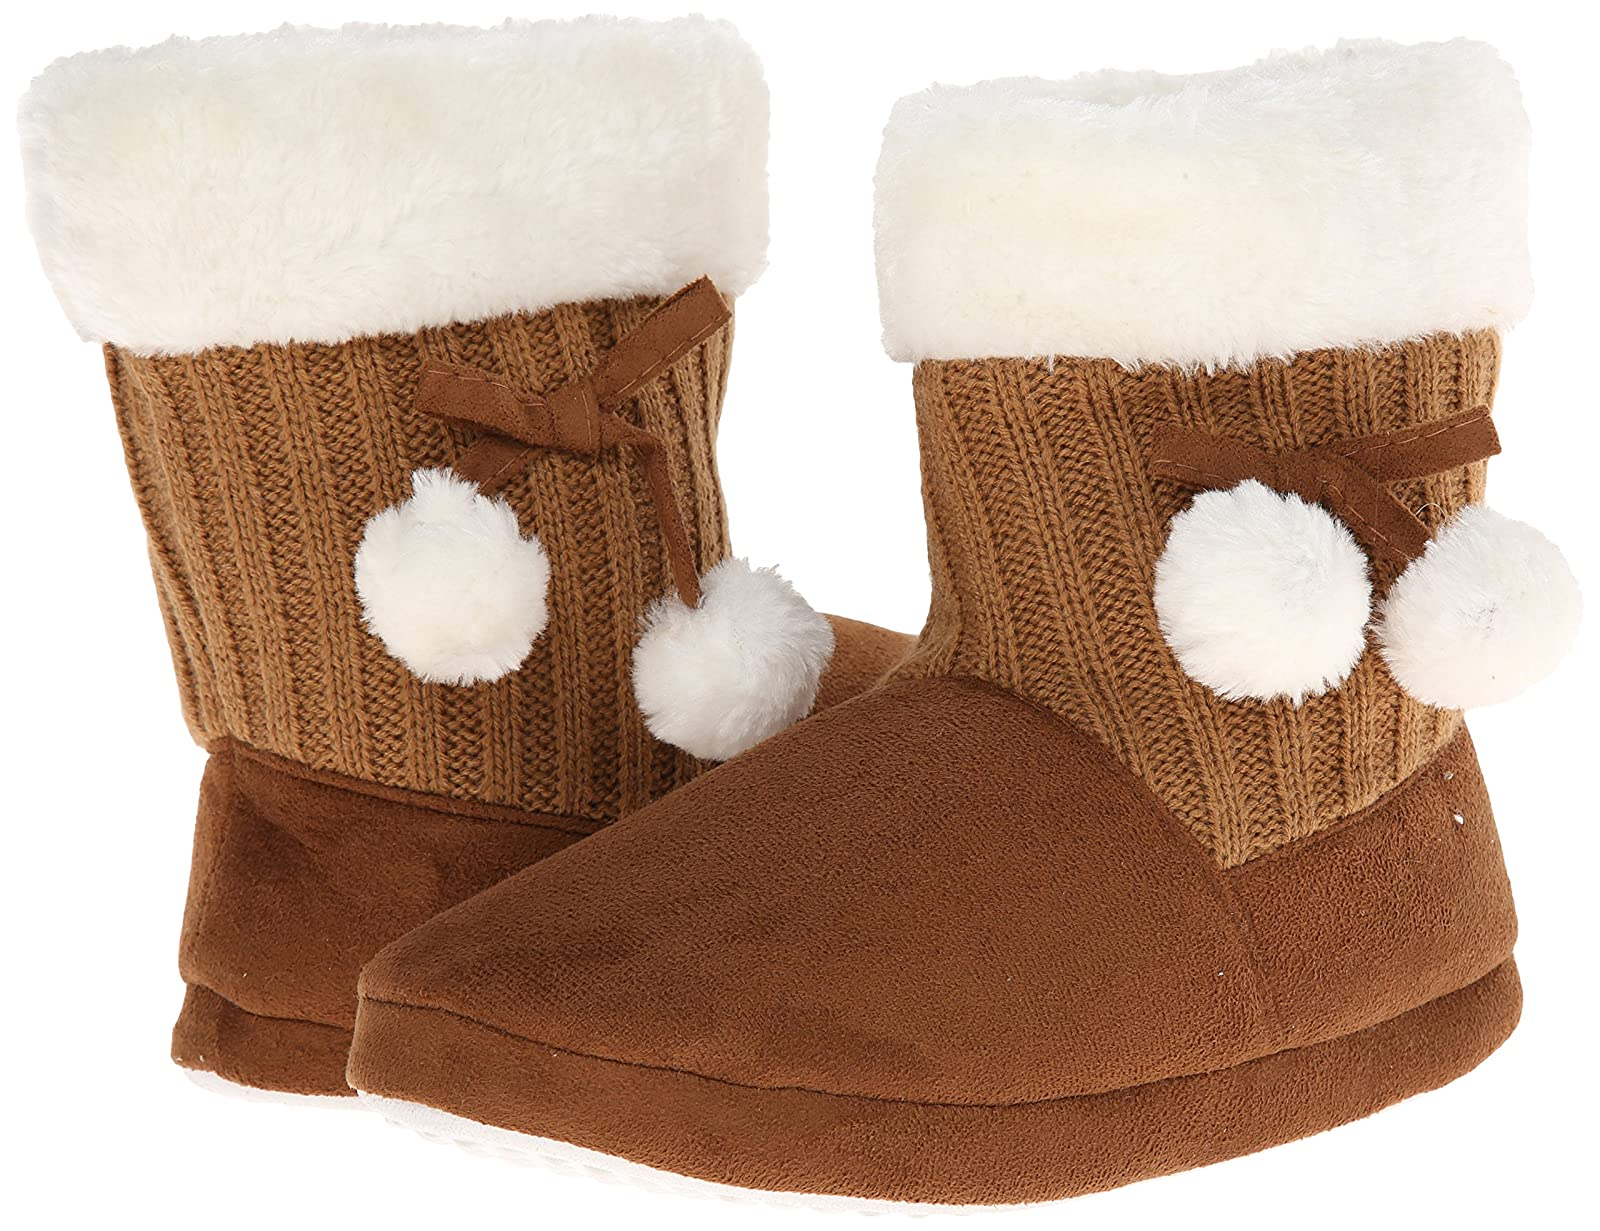 Gold Toe Women's Pom Pom Pom - 6